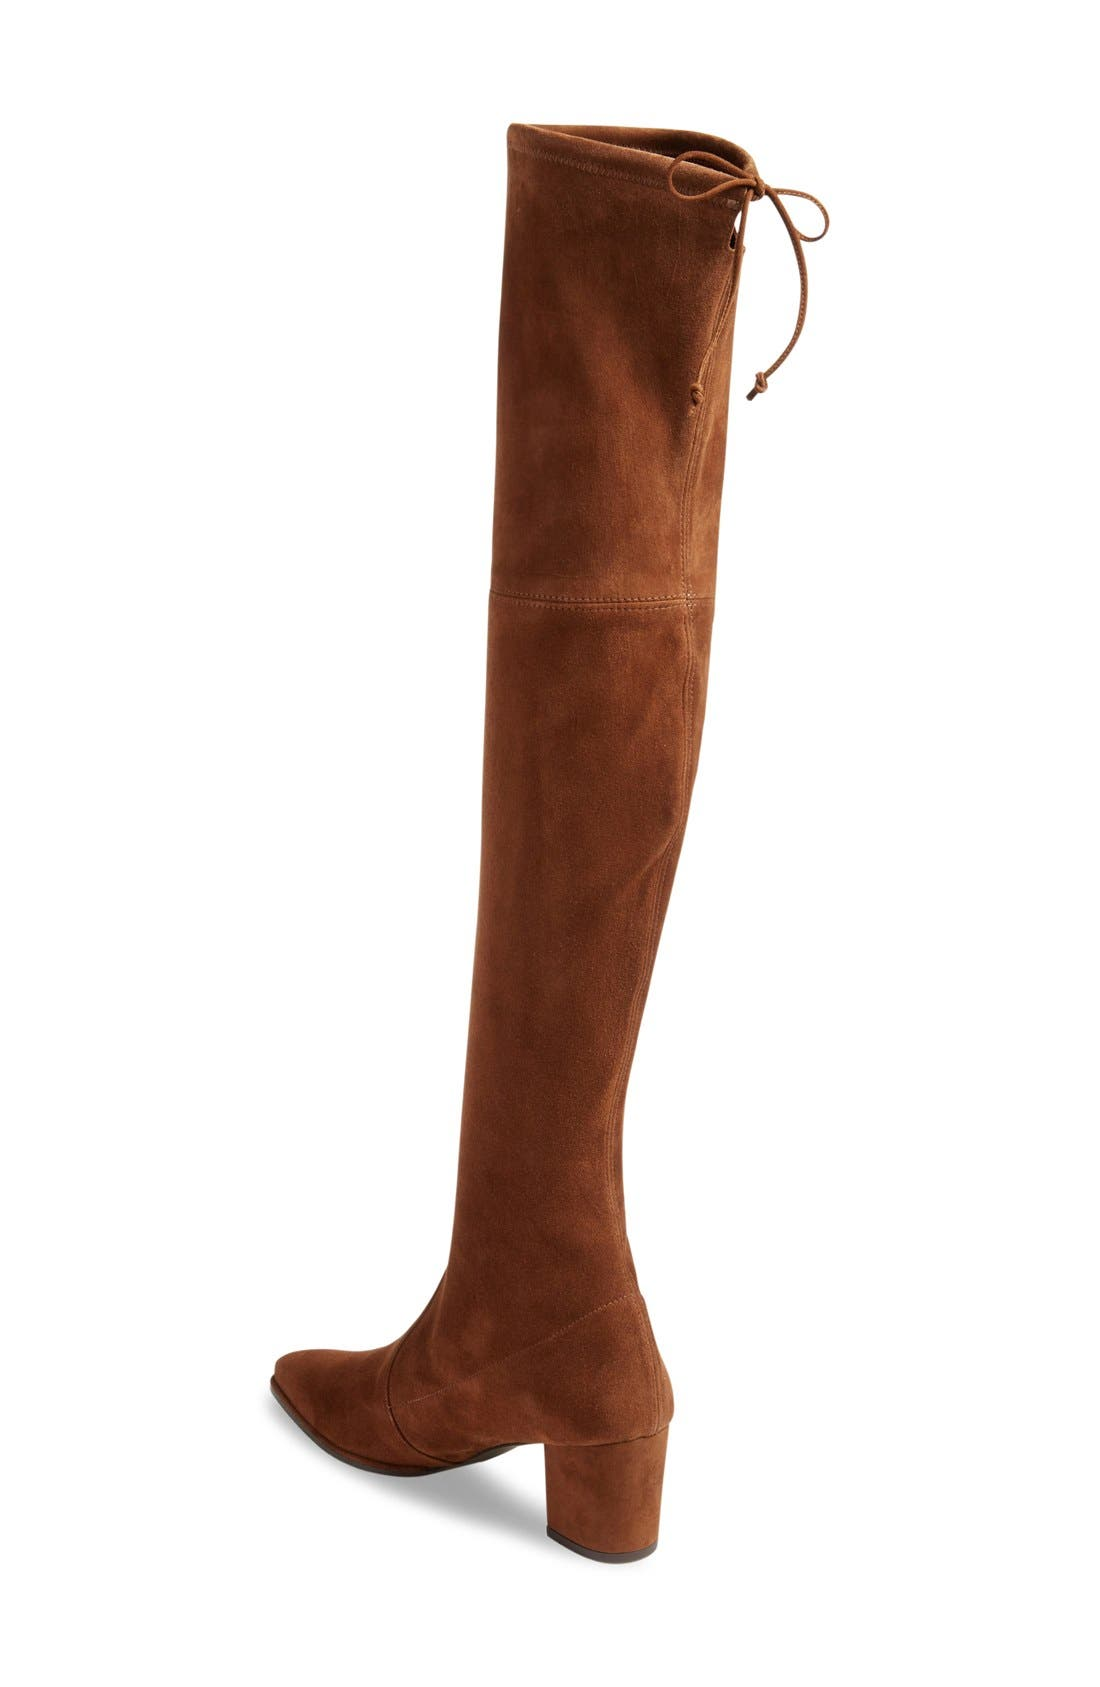 Thighland Over the Knee Boot,                             Alternate thumbnail 2, color,                             Walnut Suede